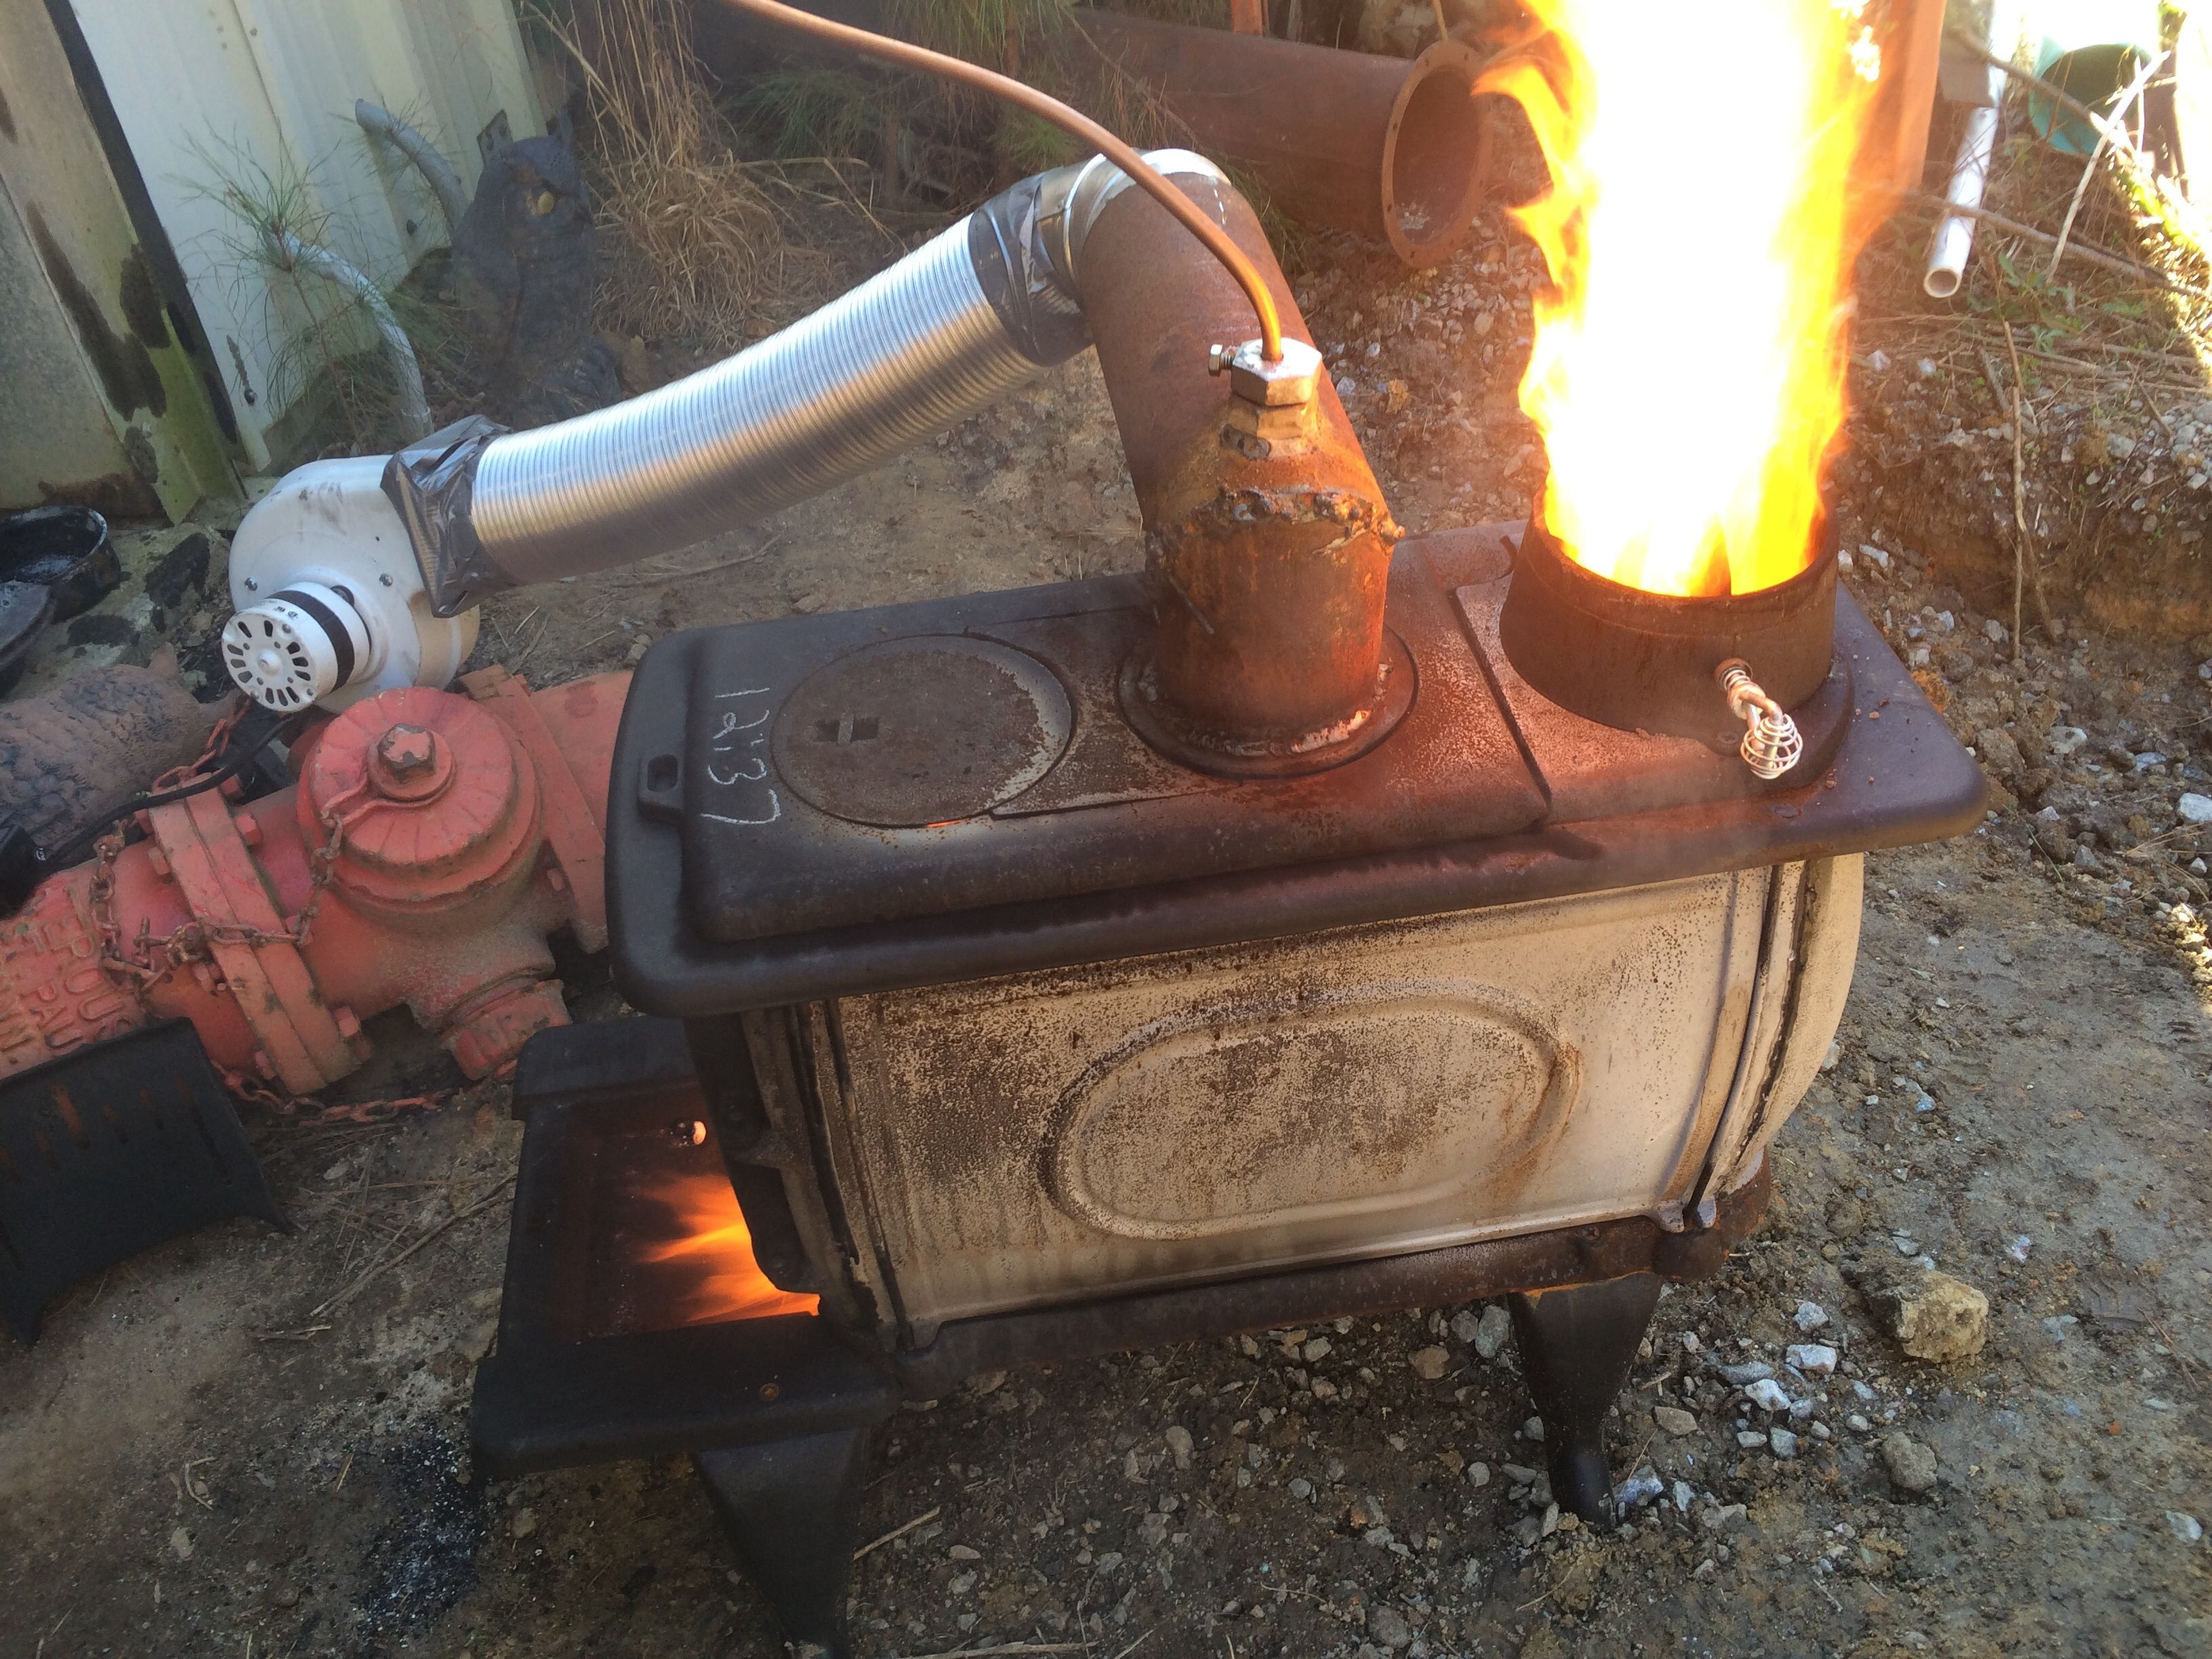 Pin On Waste Motor Oil Drip Heater Bertha Made From An Old